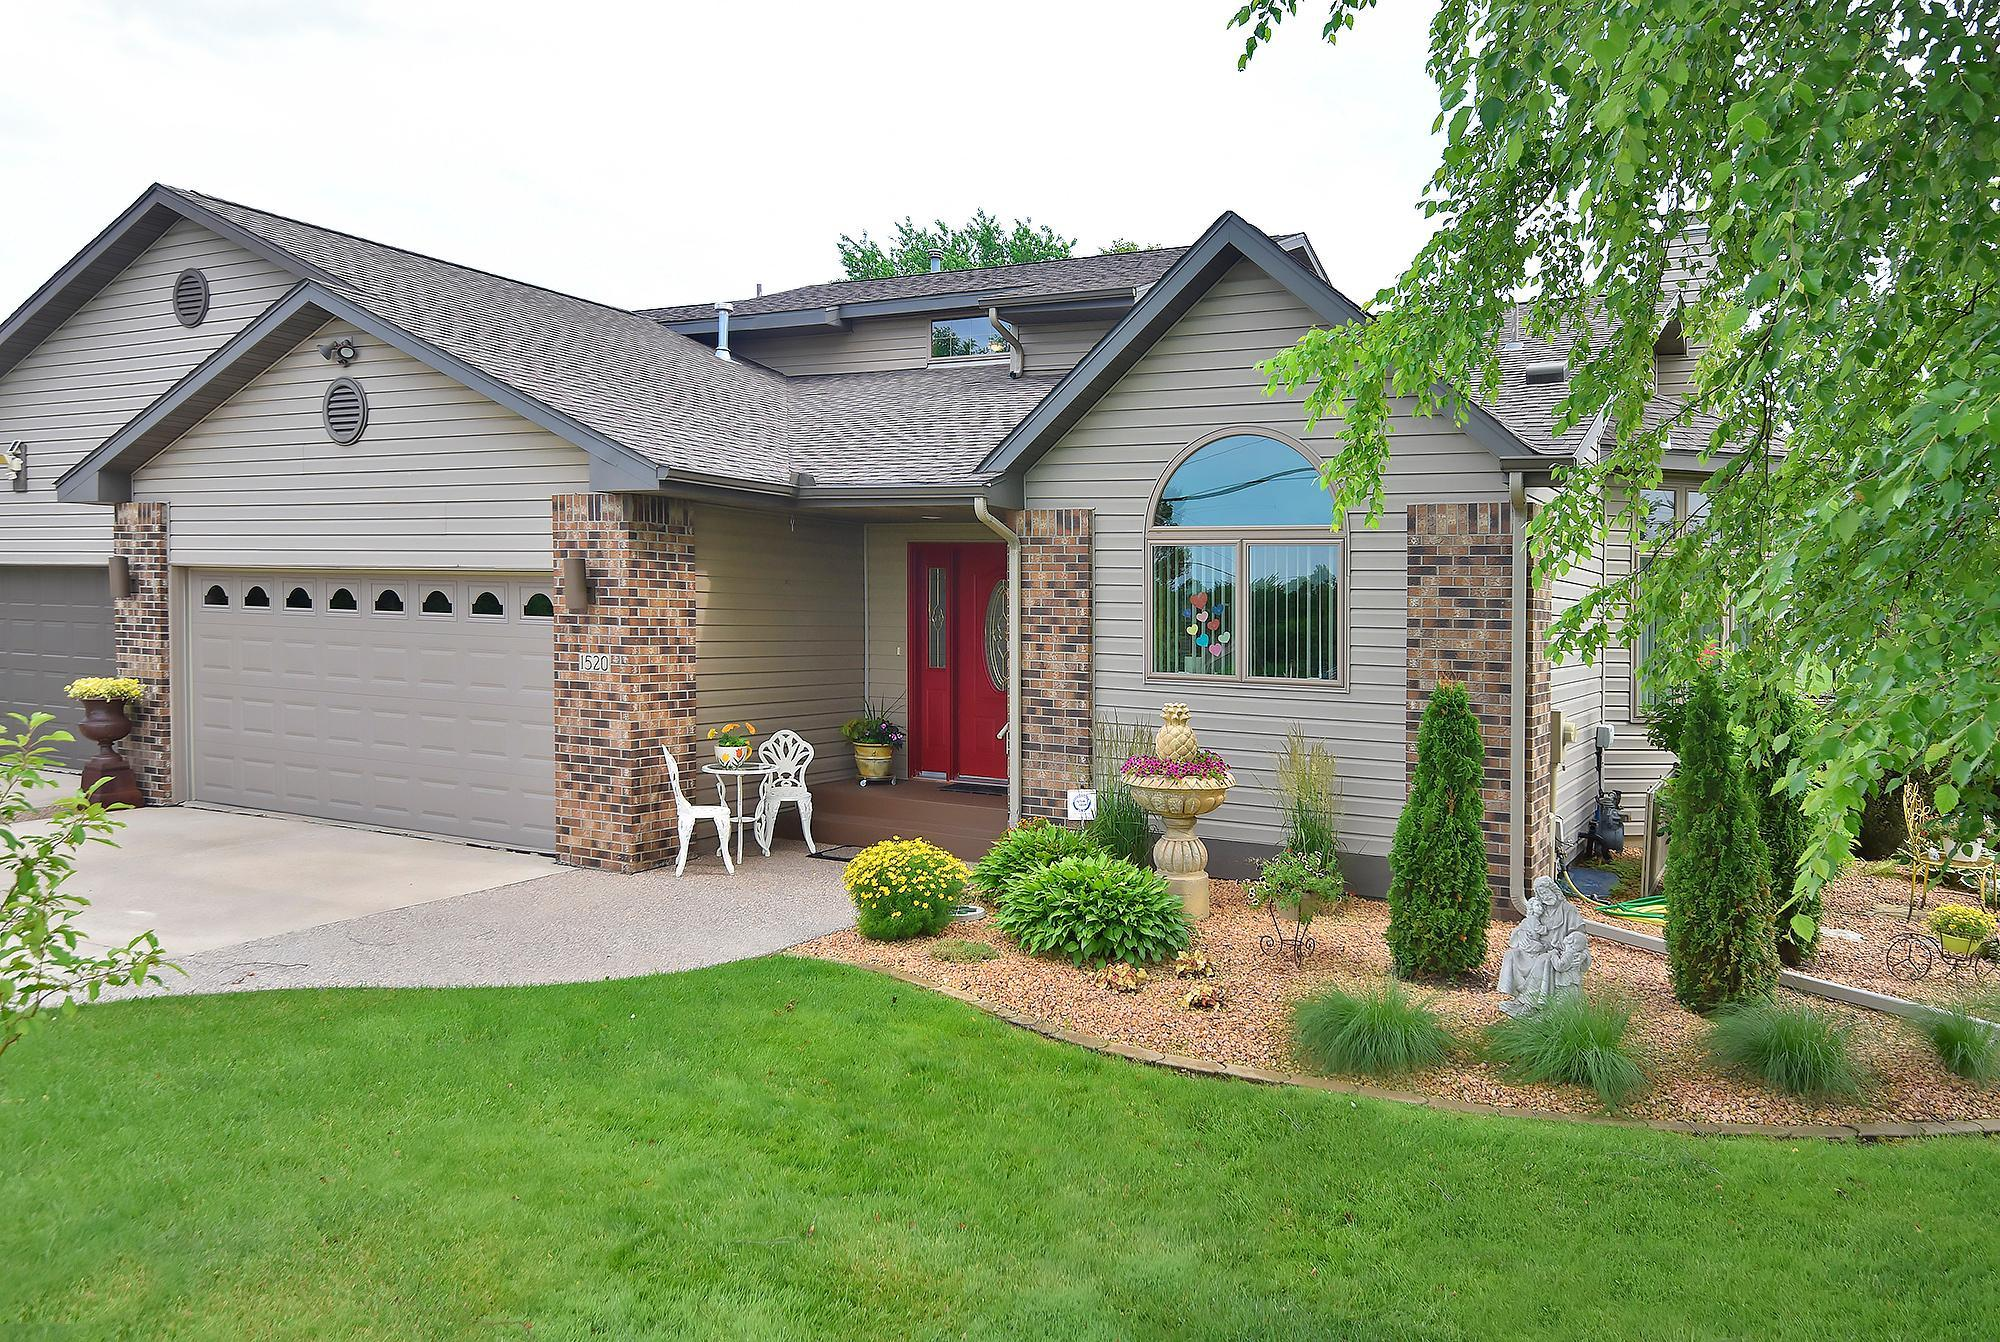 1520 Rose Property Photo - Owatonna, MN real estate listing